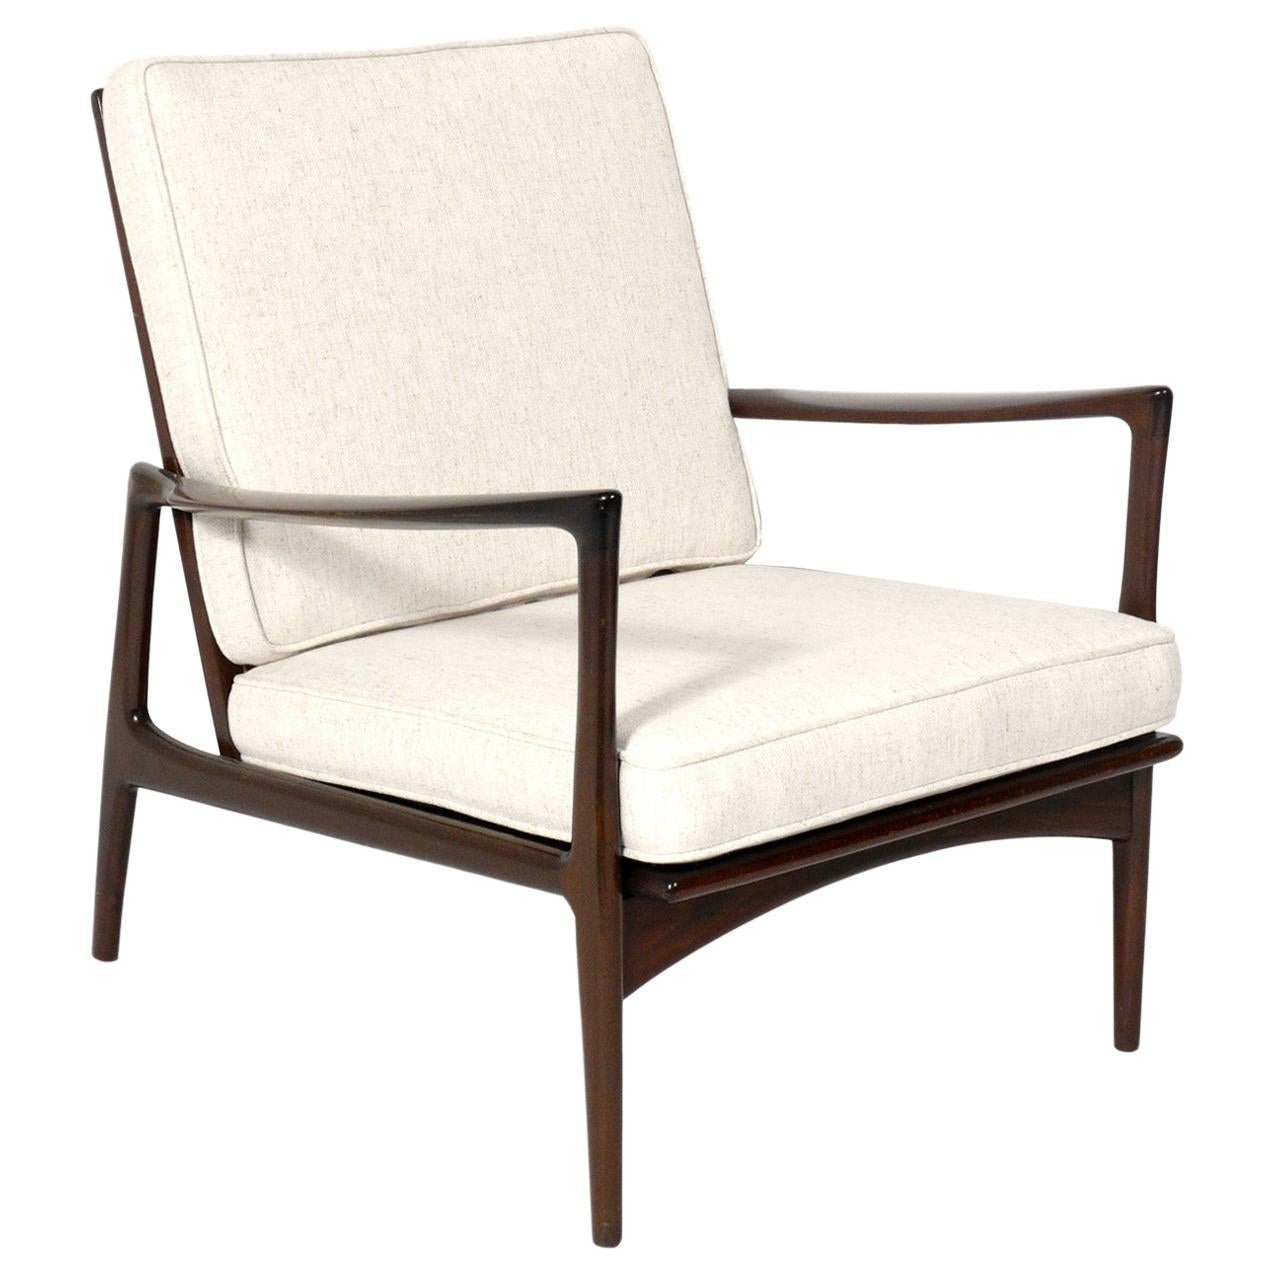 Danish Modern Lounge Chair by Ib Kofod Larsen